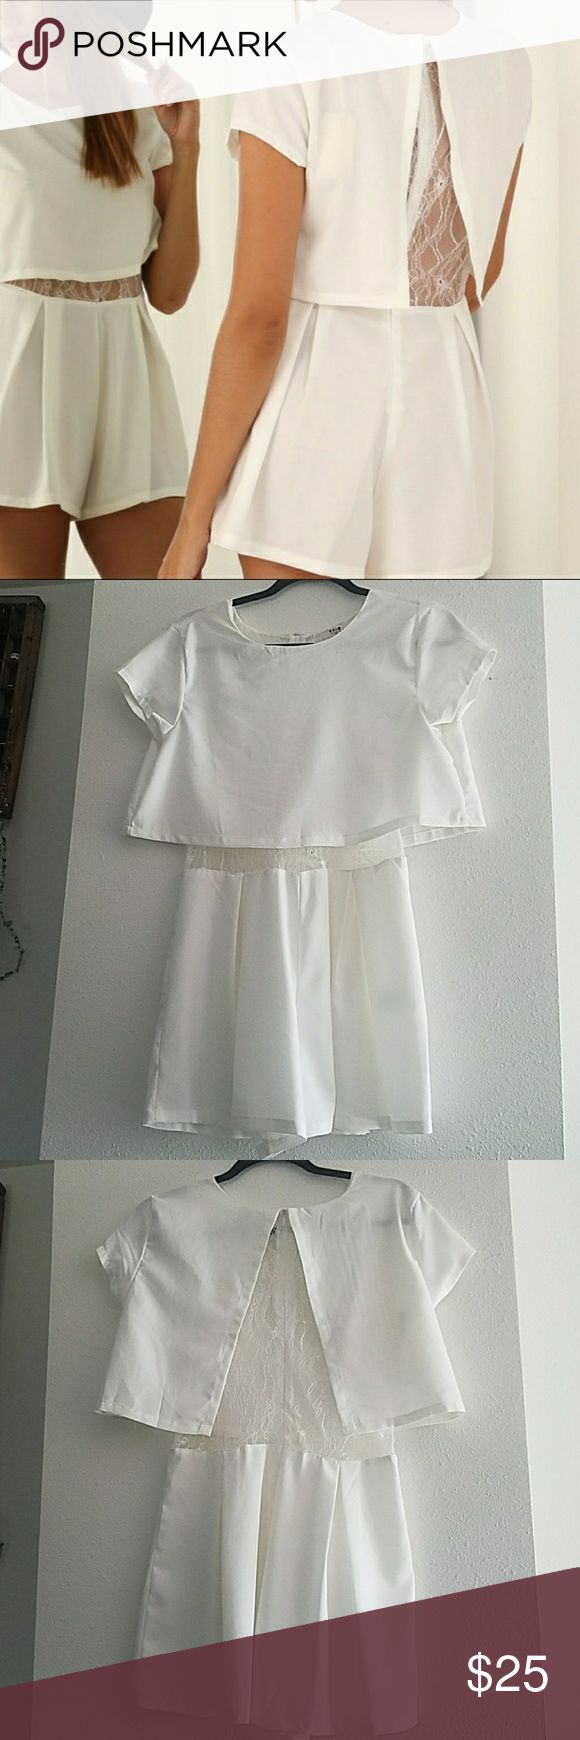 White romper NWOT Bought this at an Apricot Lane boutique, took the tags off but it's never been worn. uniq Shorts